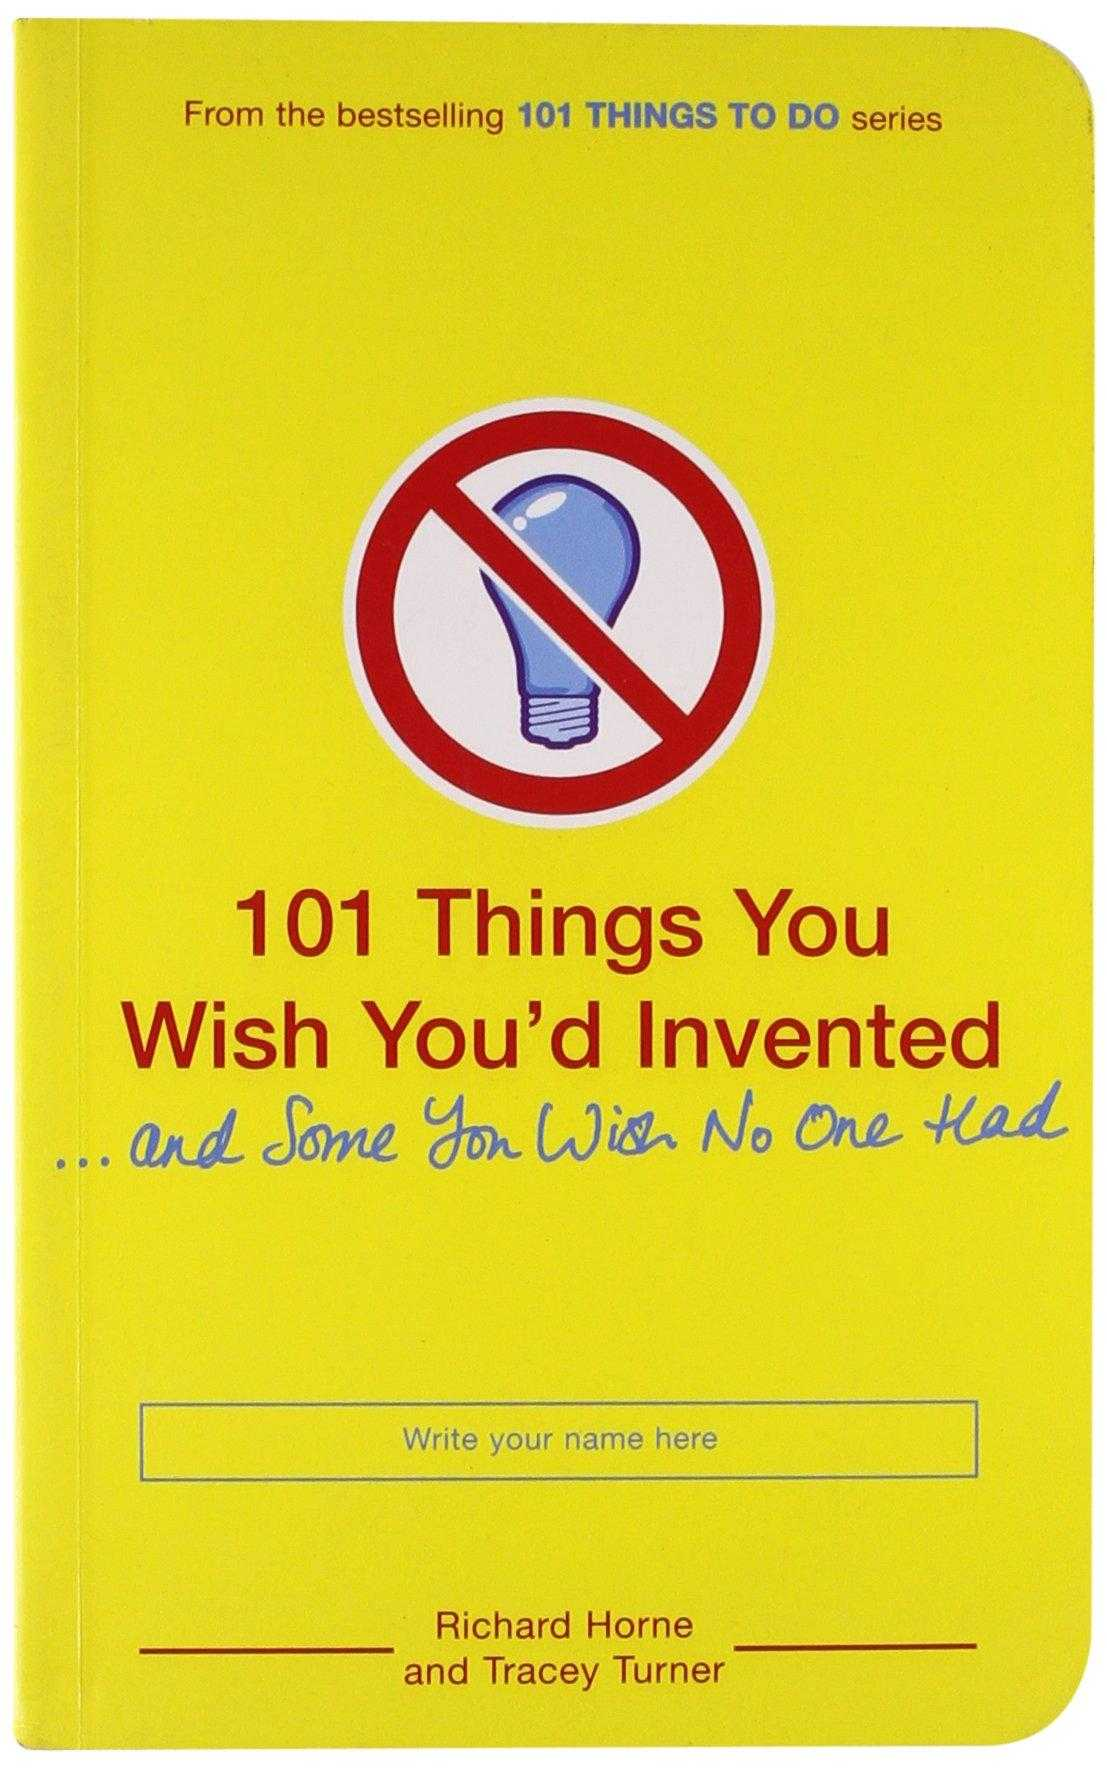 101 Things You Wish You'd Invented and Some You Wish No One Had b., Horne, Illustrator) Richard (Author